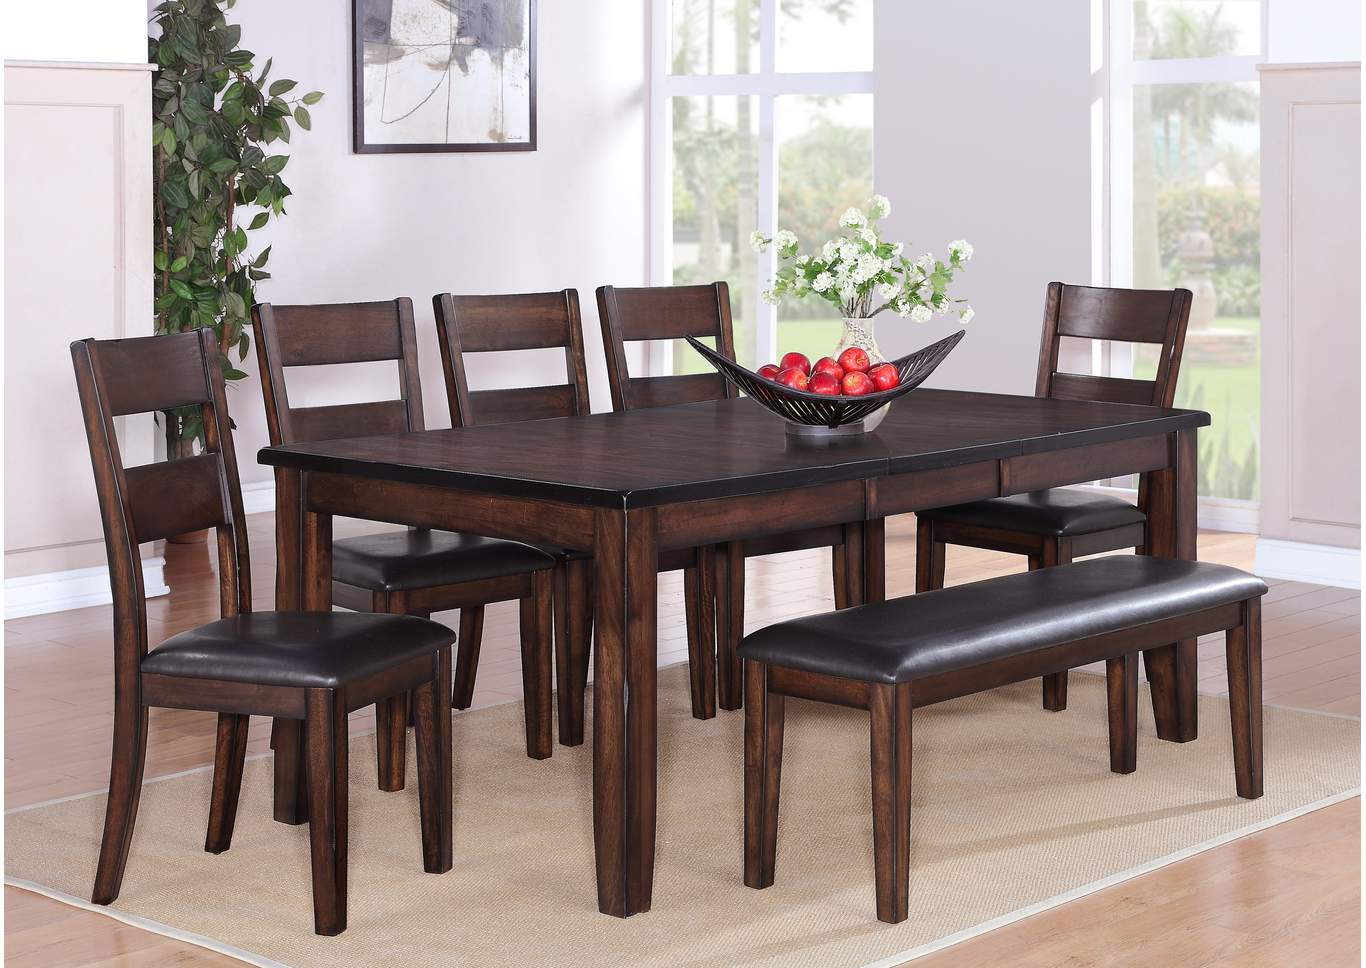 Maldives Rectangular Extension Dining Table w/4 Side Chairs and Bench,Crown Mark